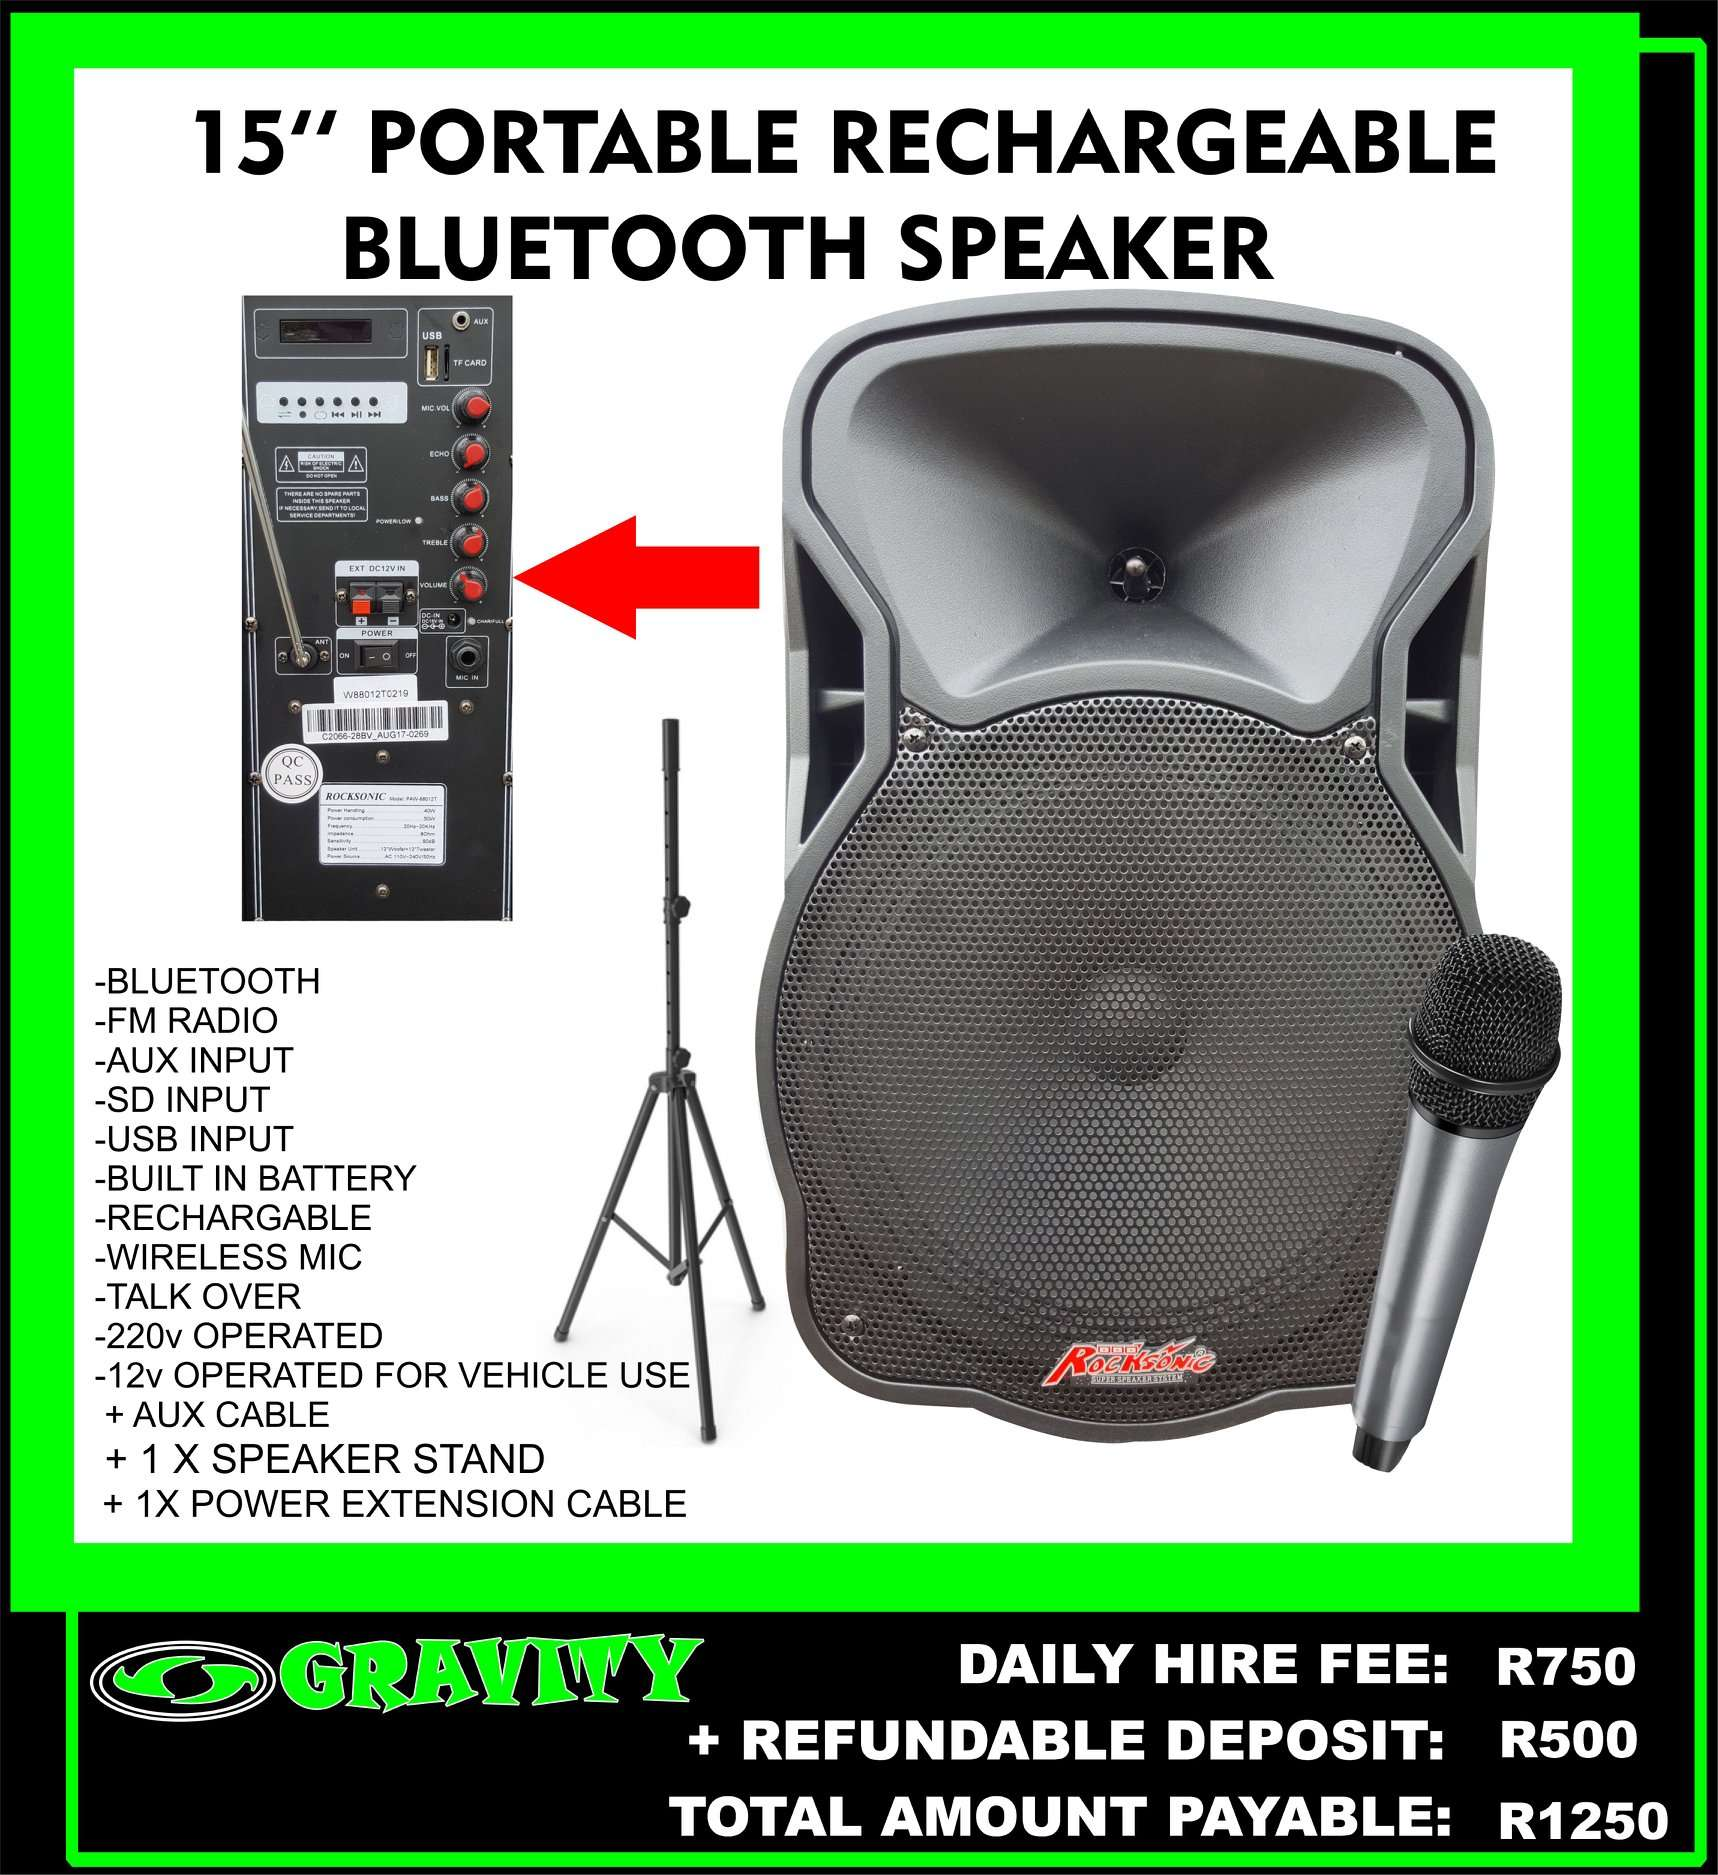 PLUG AND PLAY SOUND SYTEM  -BLUETOOTH FEATURE  -USB MP3 INPUT  -CORDLESS MIC  -500W POWERED SPEAKER  -FULLY RECHARGEABLE / BATTERY OPERATED SPEAKER TO BE USED WIRELESS    BATTERY LASTS UP TO 3 HOURS ON A FULL CHARGE  DAY HIRE FEE = R500